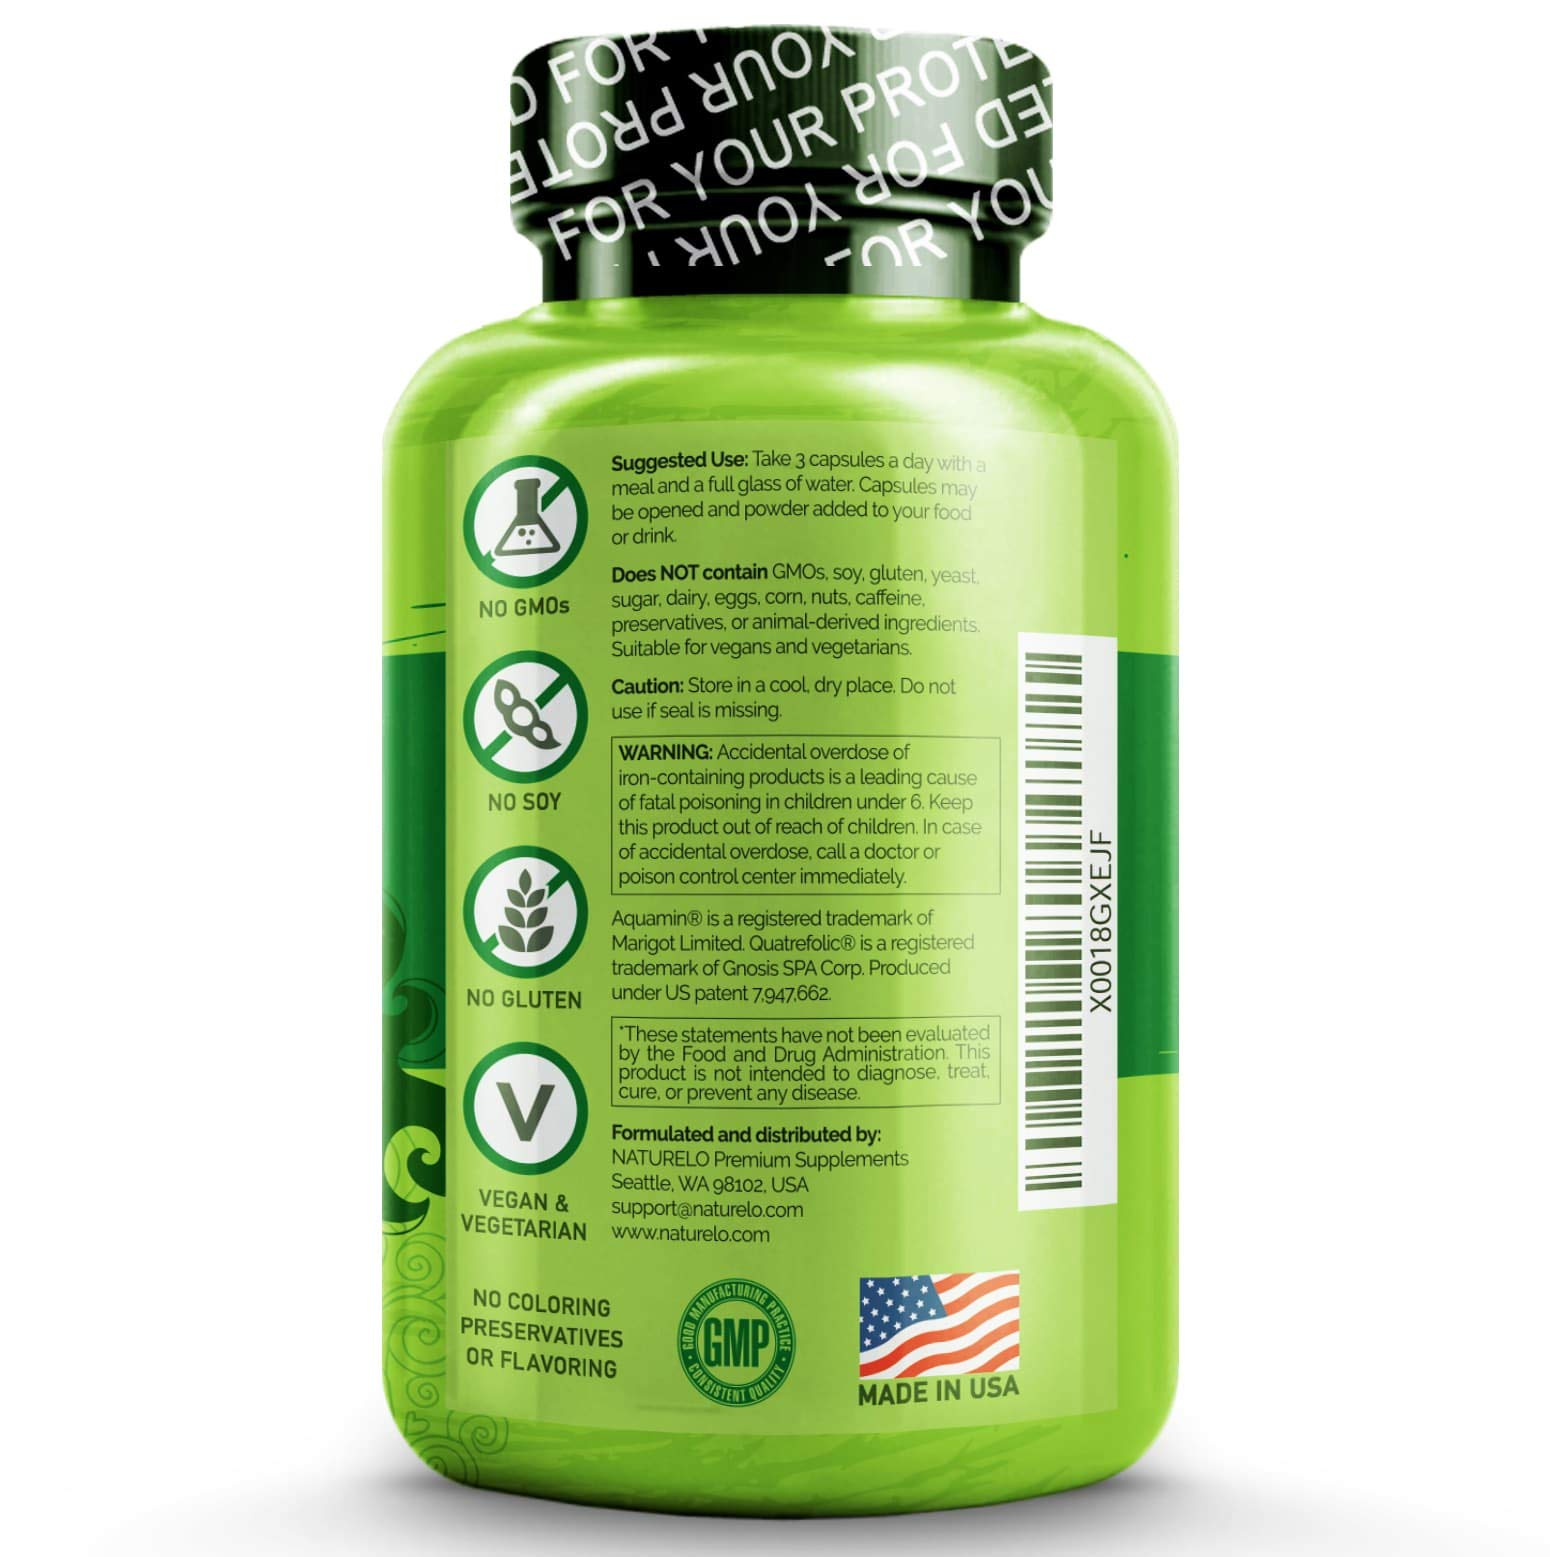 NATURELO Prenatal Whole Food Multivitamin - with Natural Iron, Folate and Calcium - Vegan & Vegetarian - Non-GMO - Gluten Free - 180 Capsules | 2 Month Supply by NATURELO (Image #1)